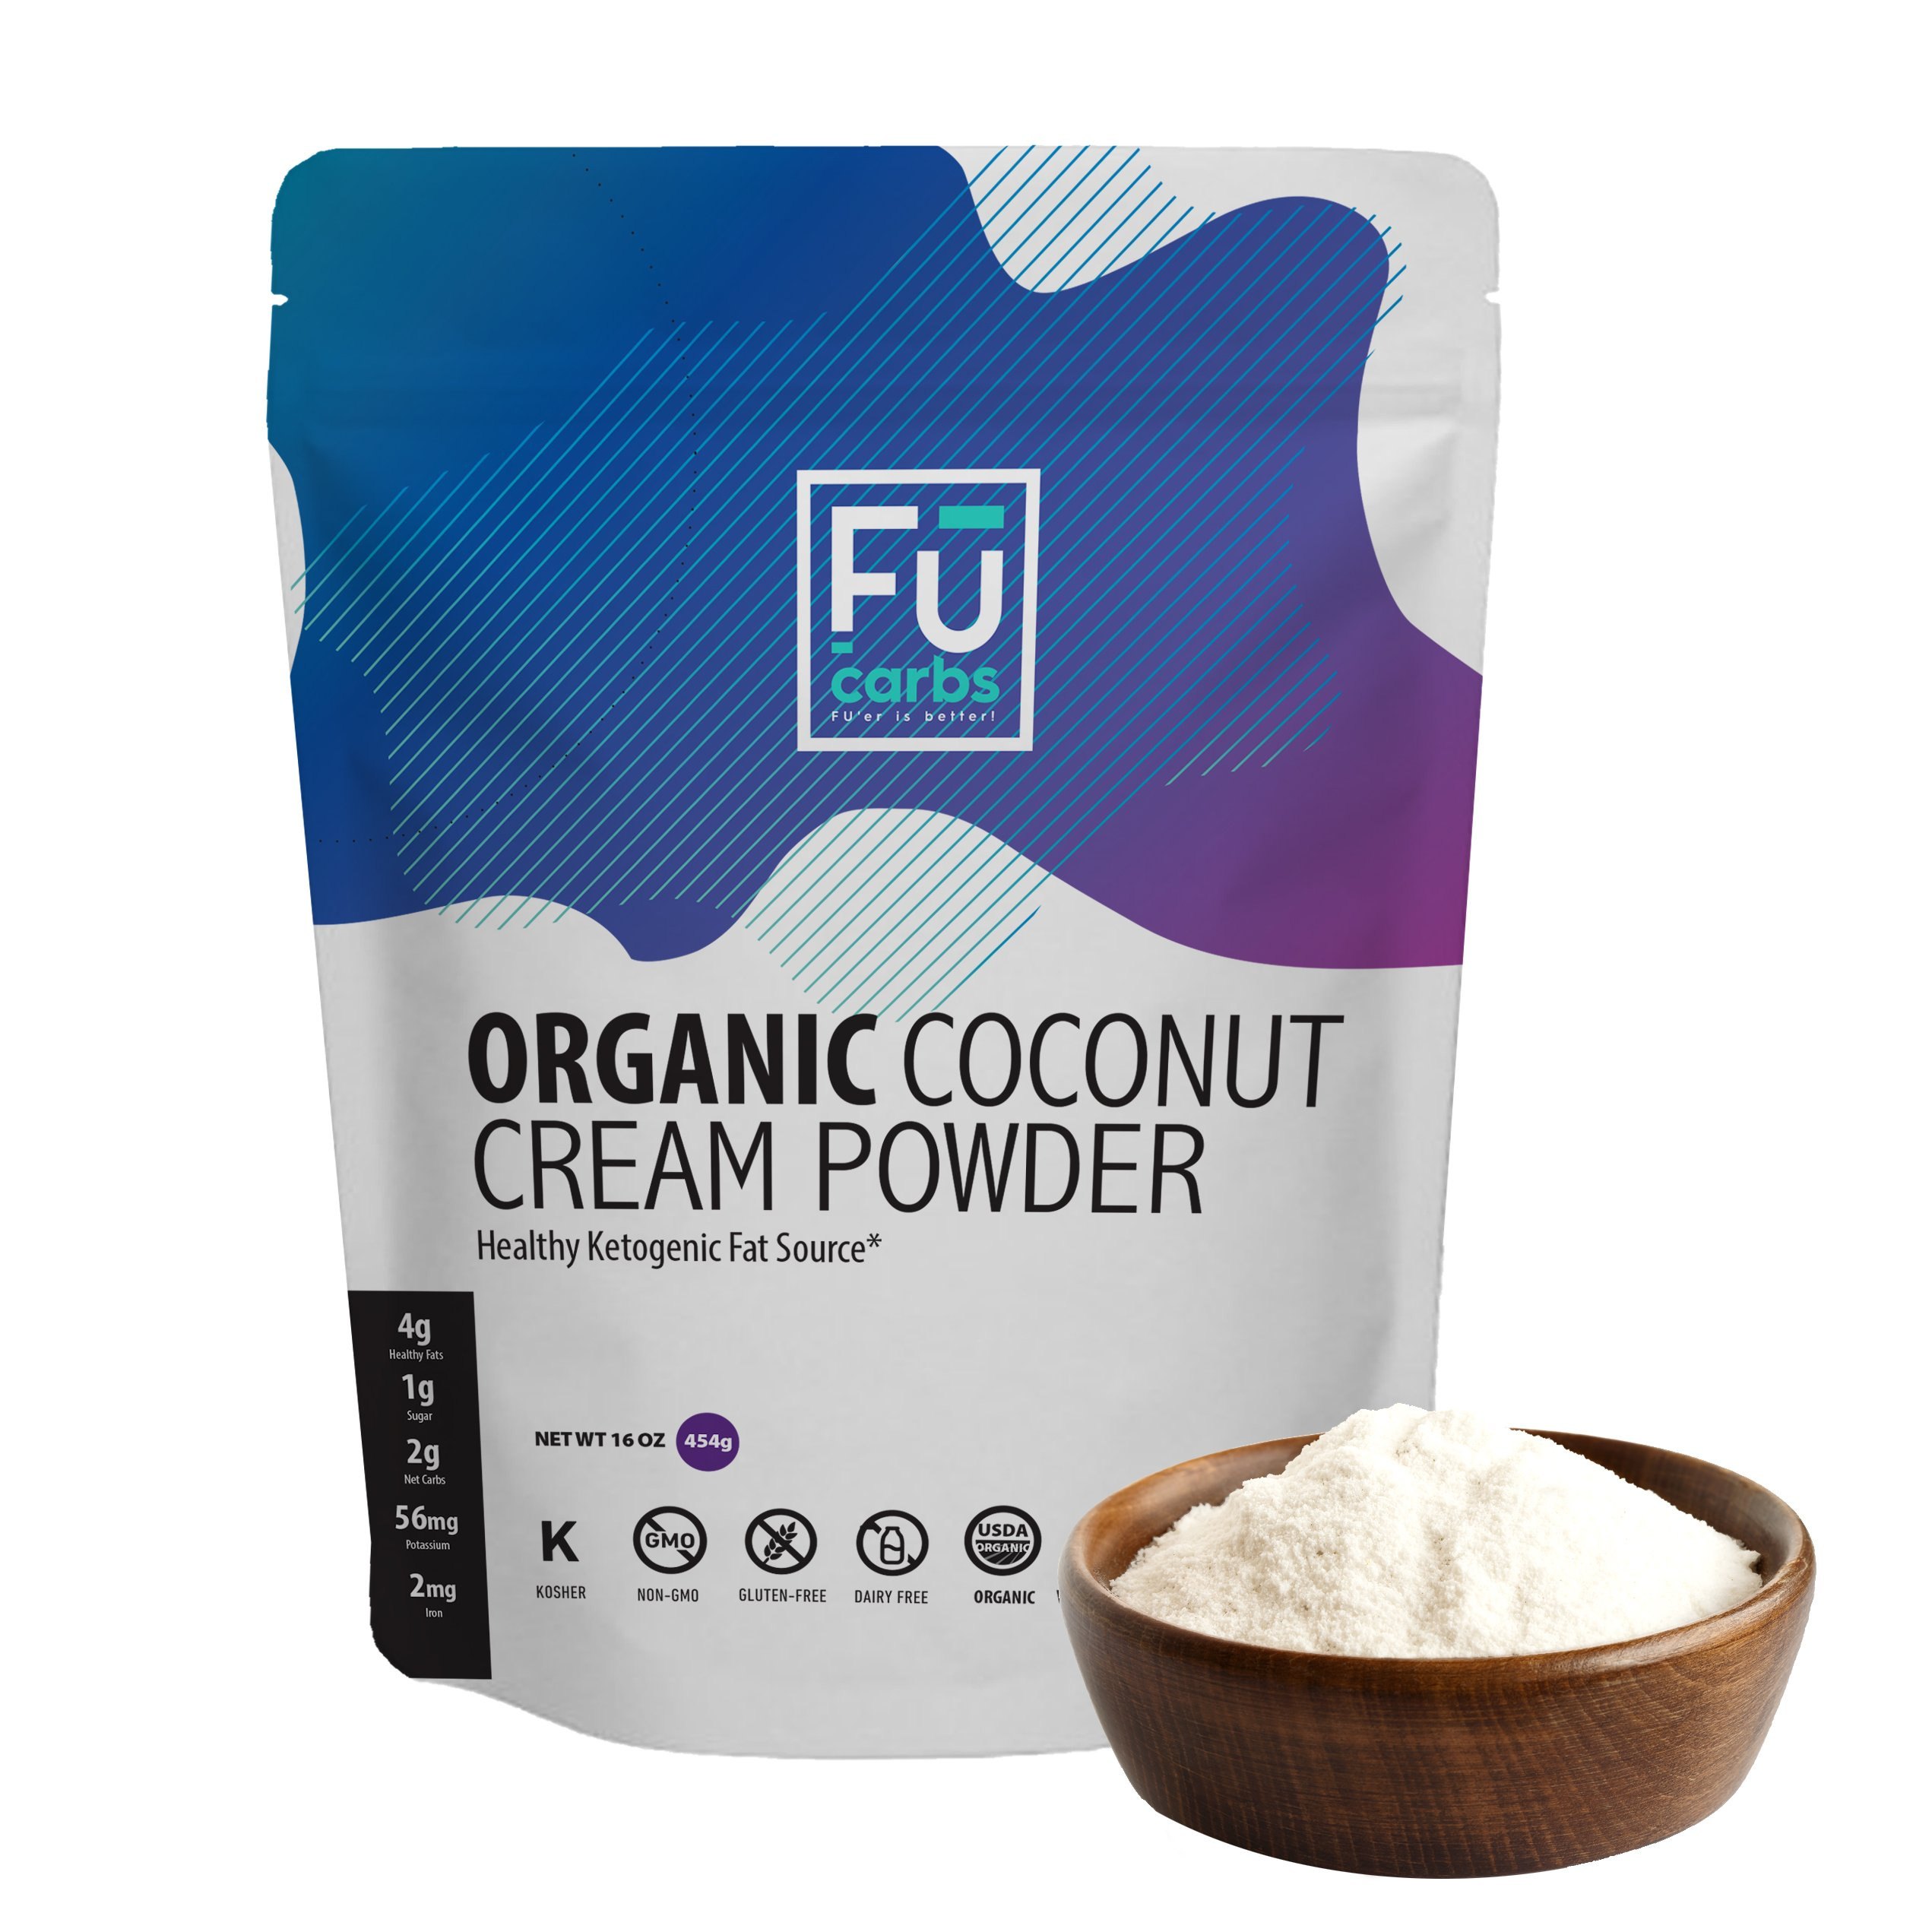 Organic Coconut Milk Cream Powder - Fū Carbs Powdered Coconut Cream Adds Healthy Fats to your Ketogenic and Paleo Diets. A Great Dairy Free, Vegan Friendly Addition to Coffee, Shakes, Smoothies etc.